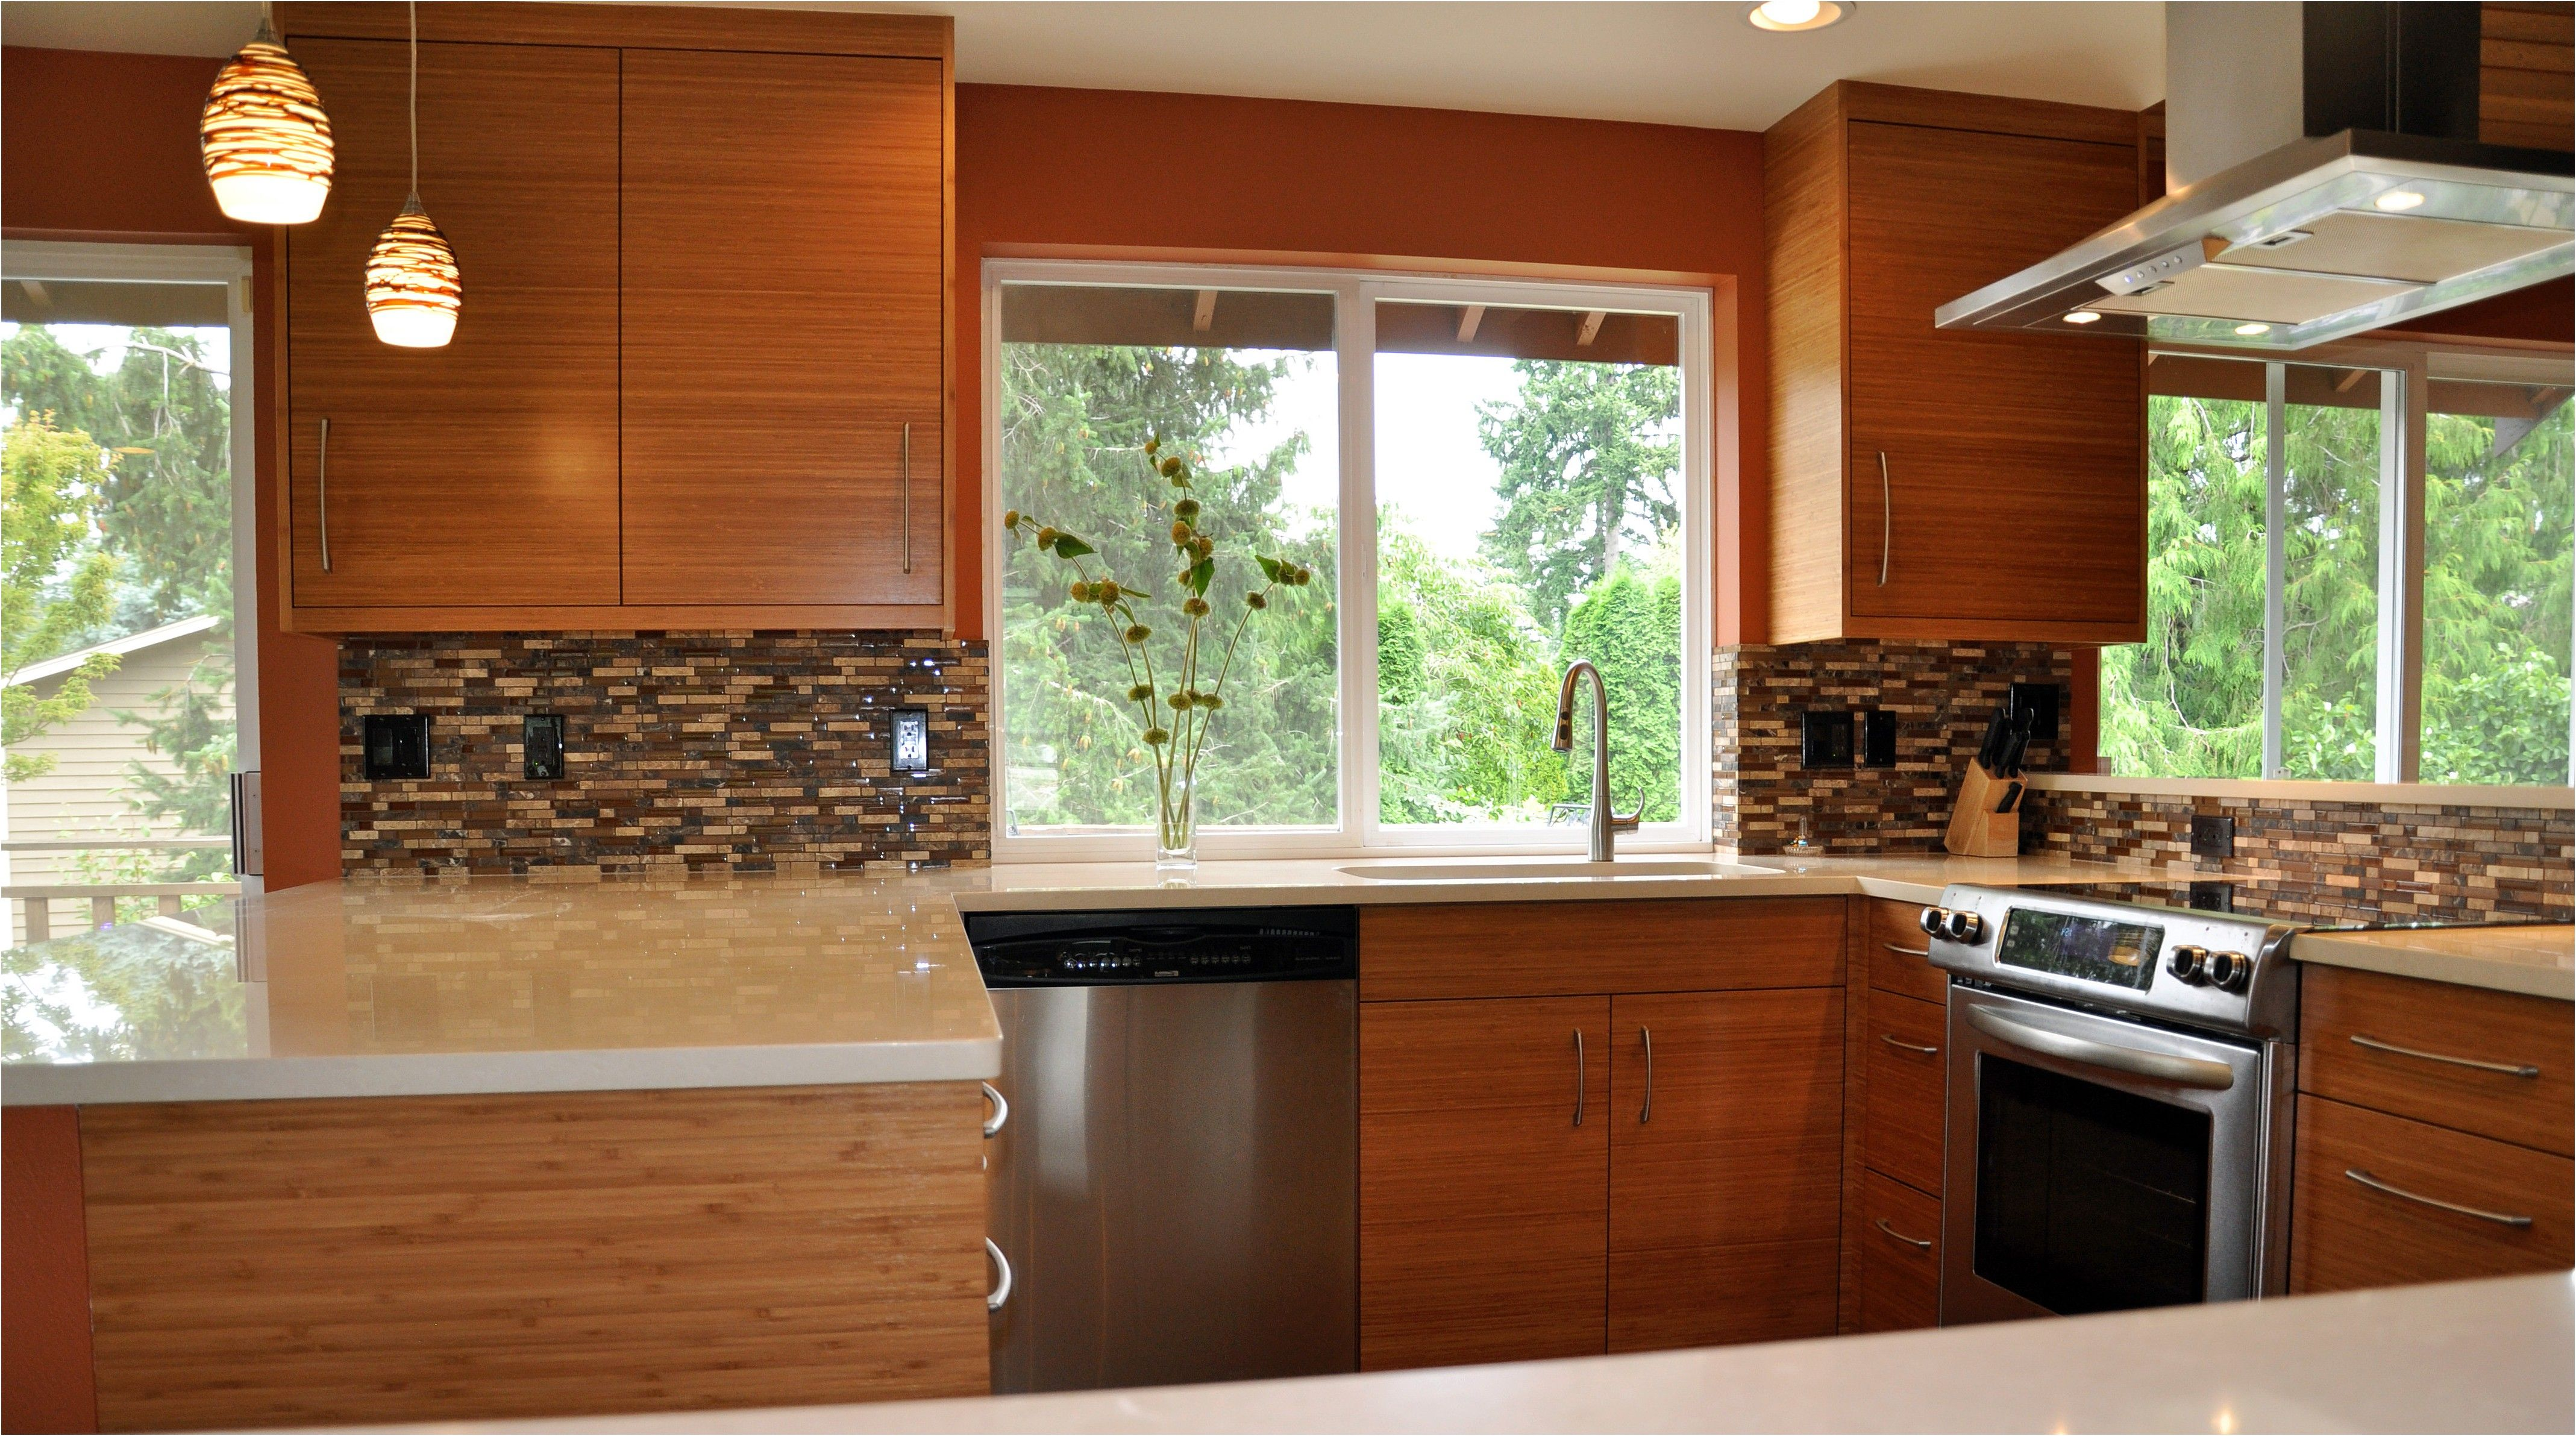 Cost Of New Kitchen From Average Cost Of New Kitchen Appliances